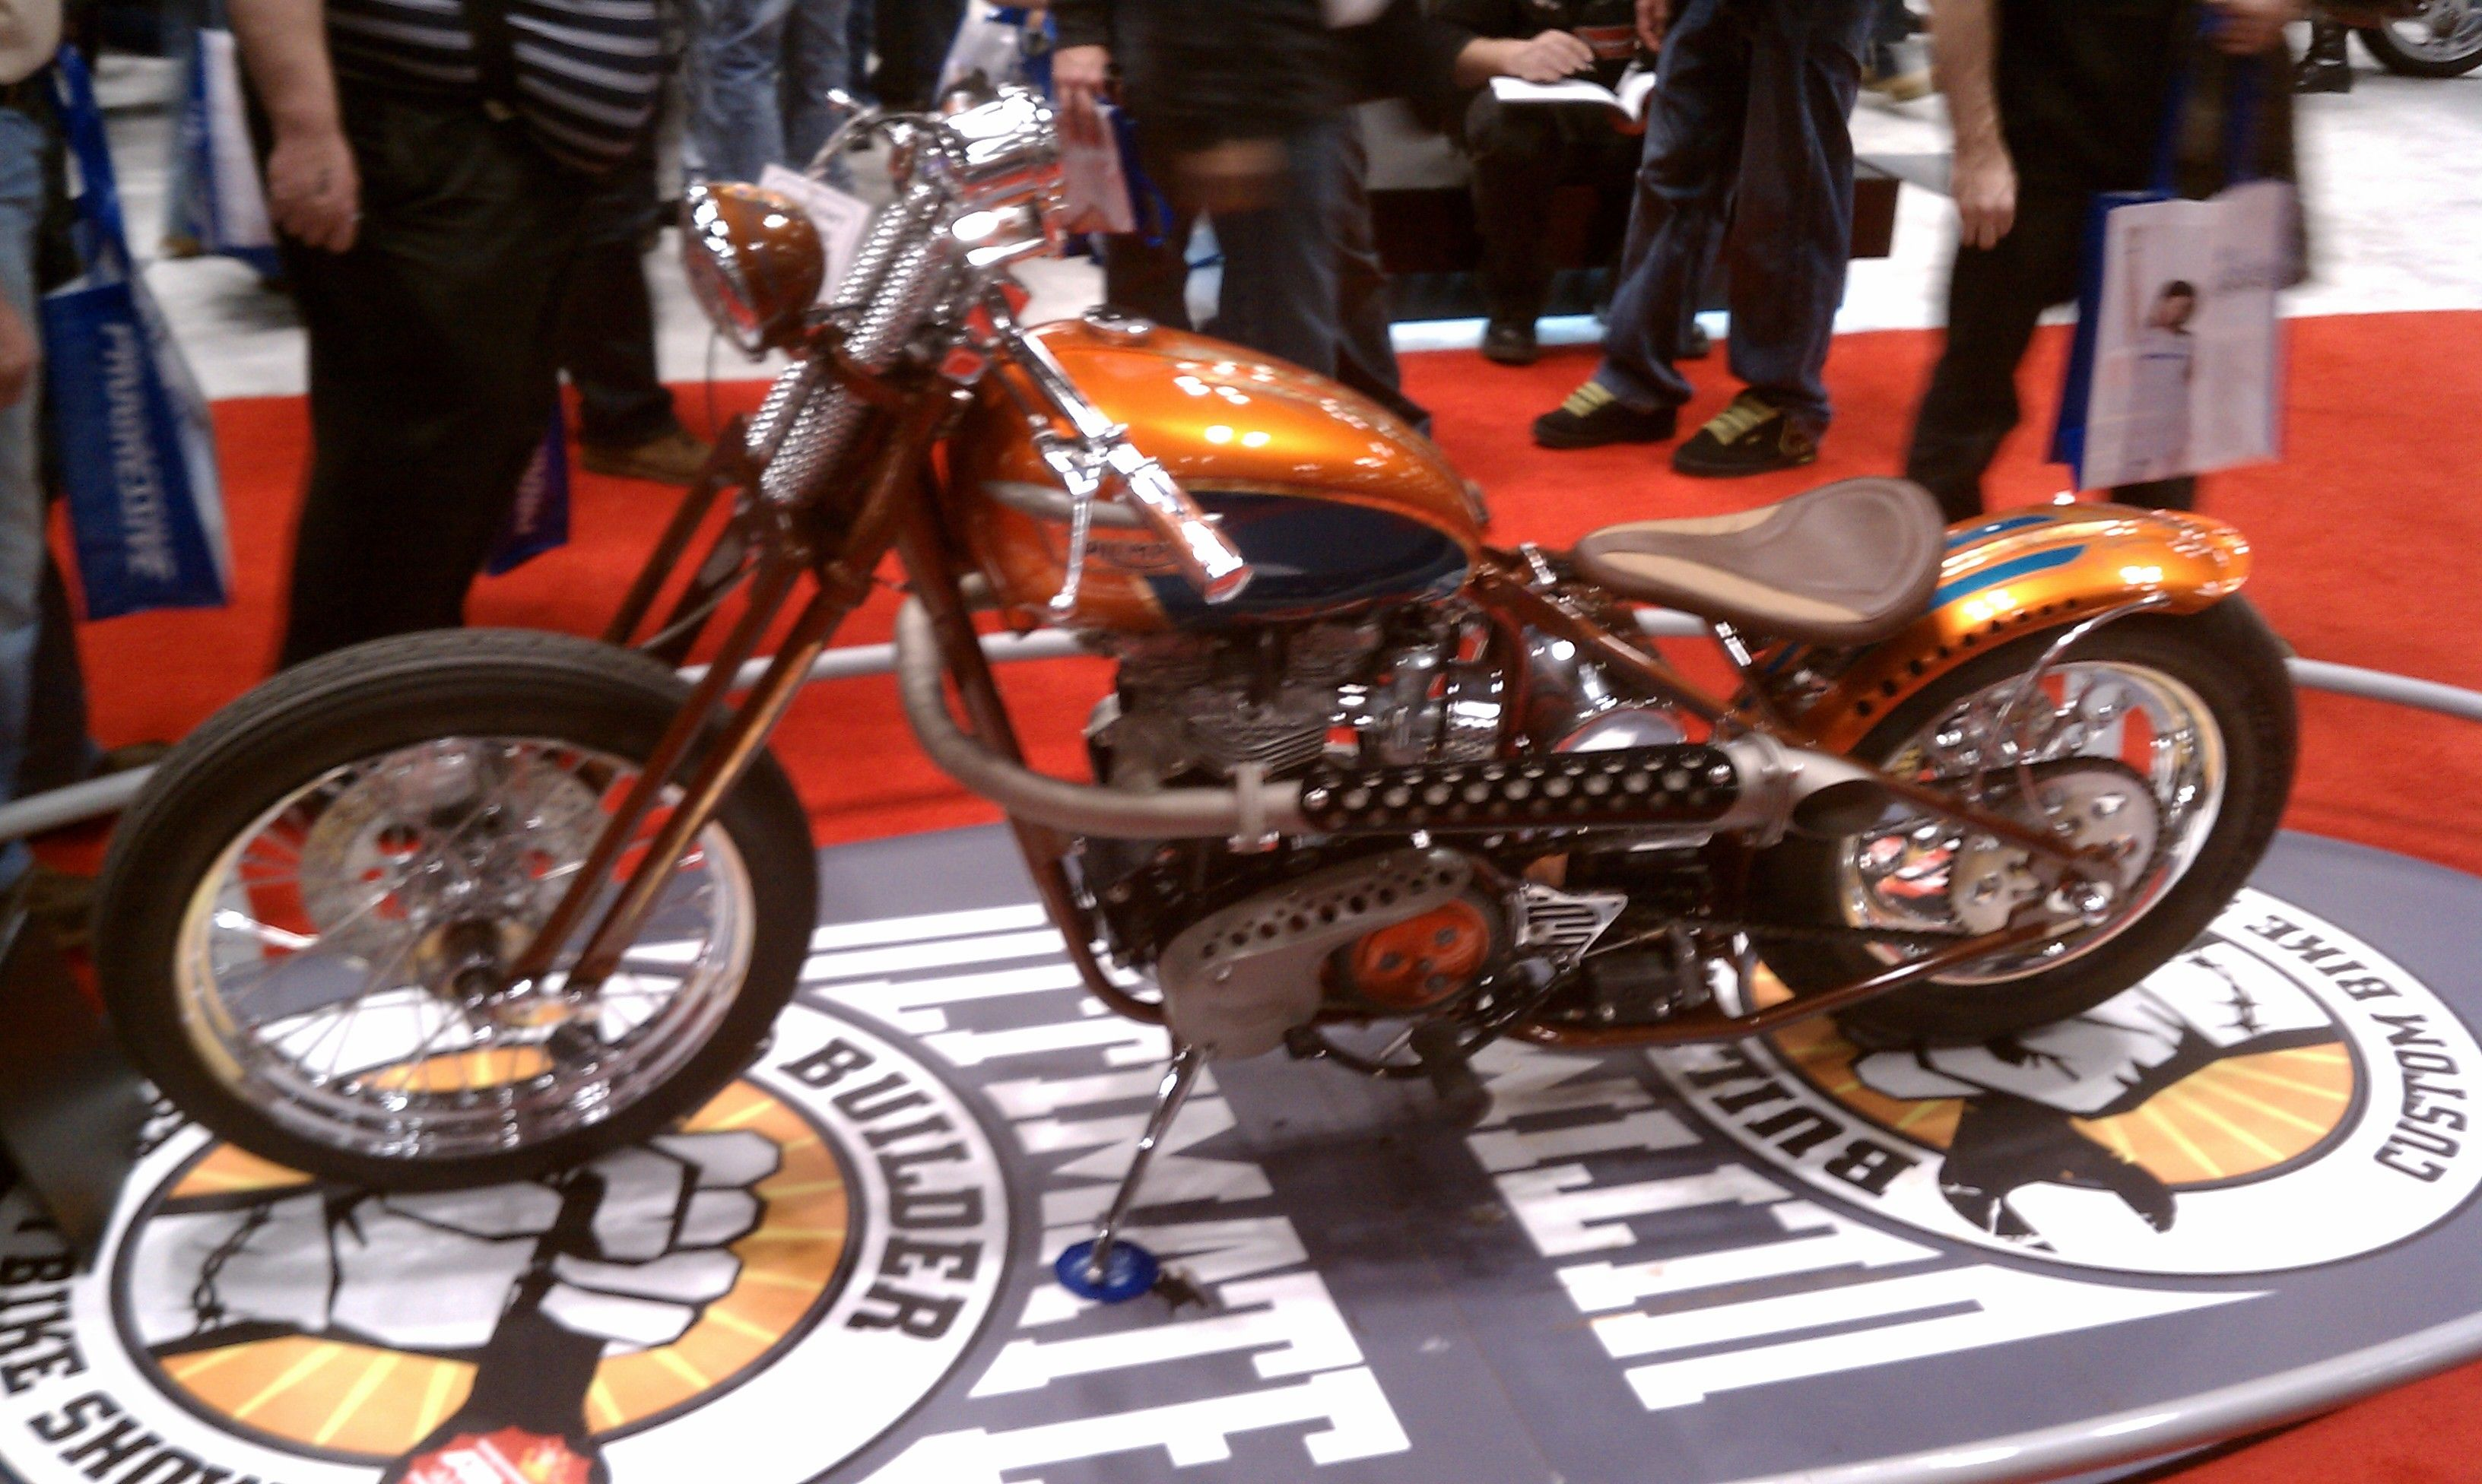 New York Motorcycle show awesome bike...